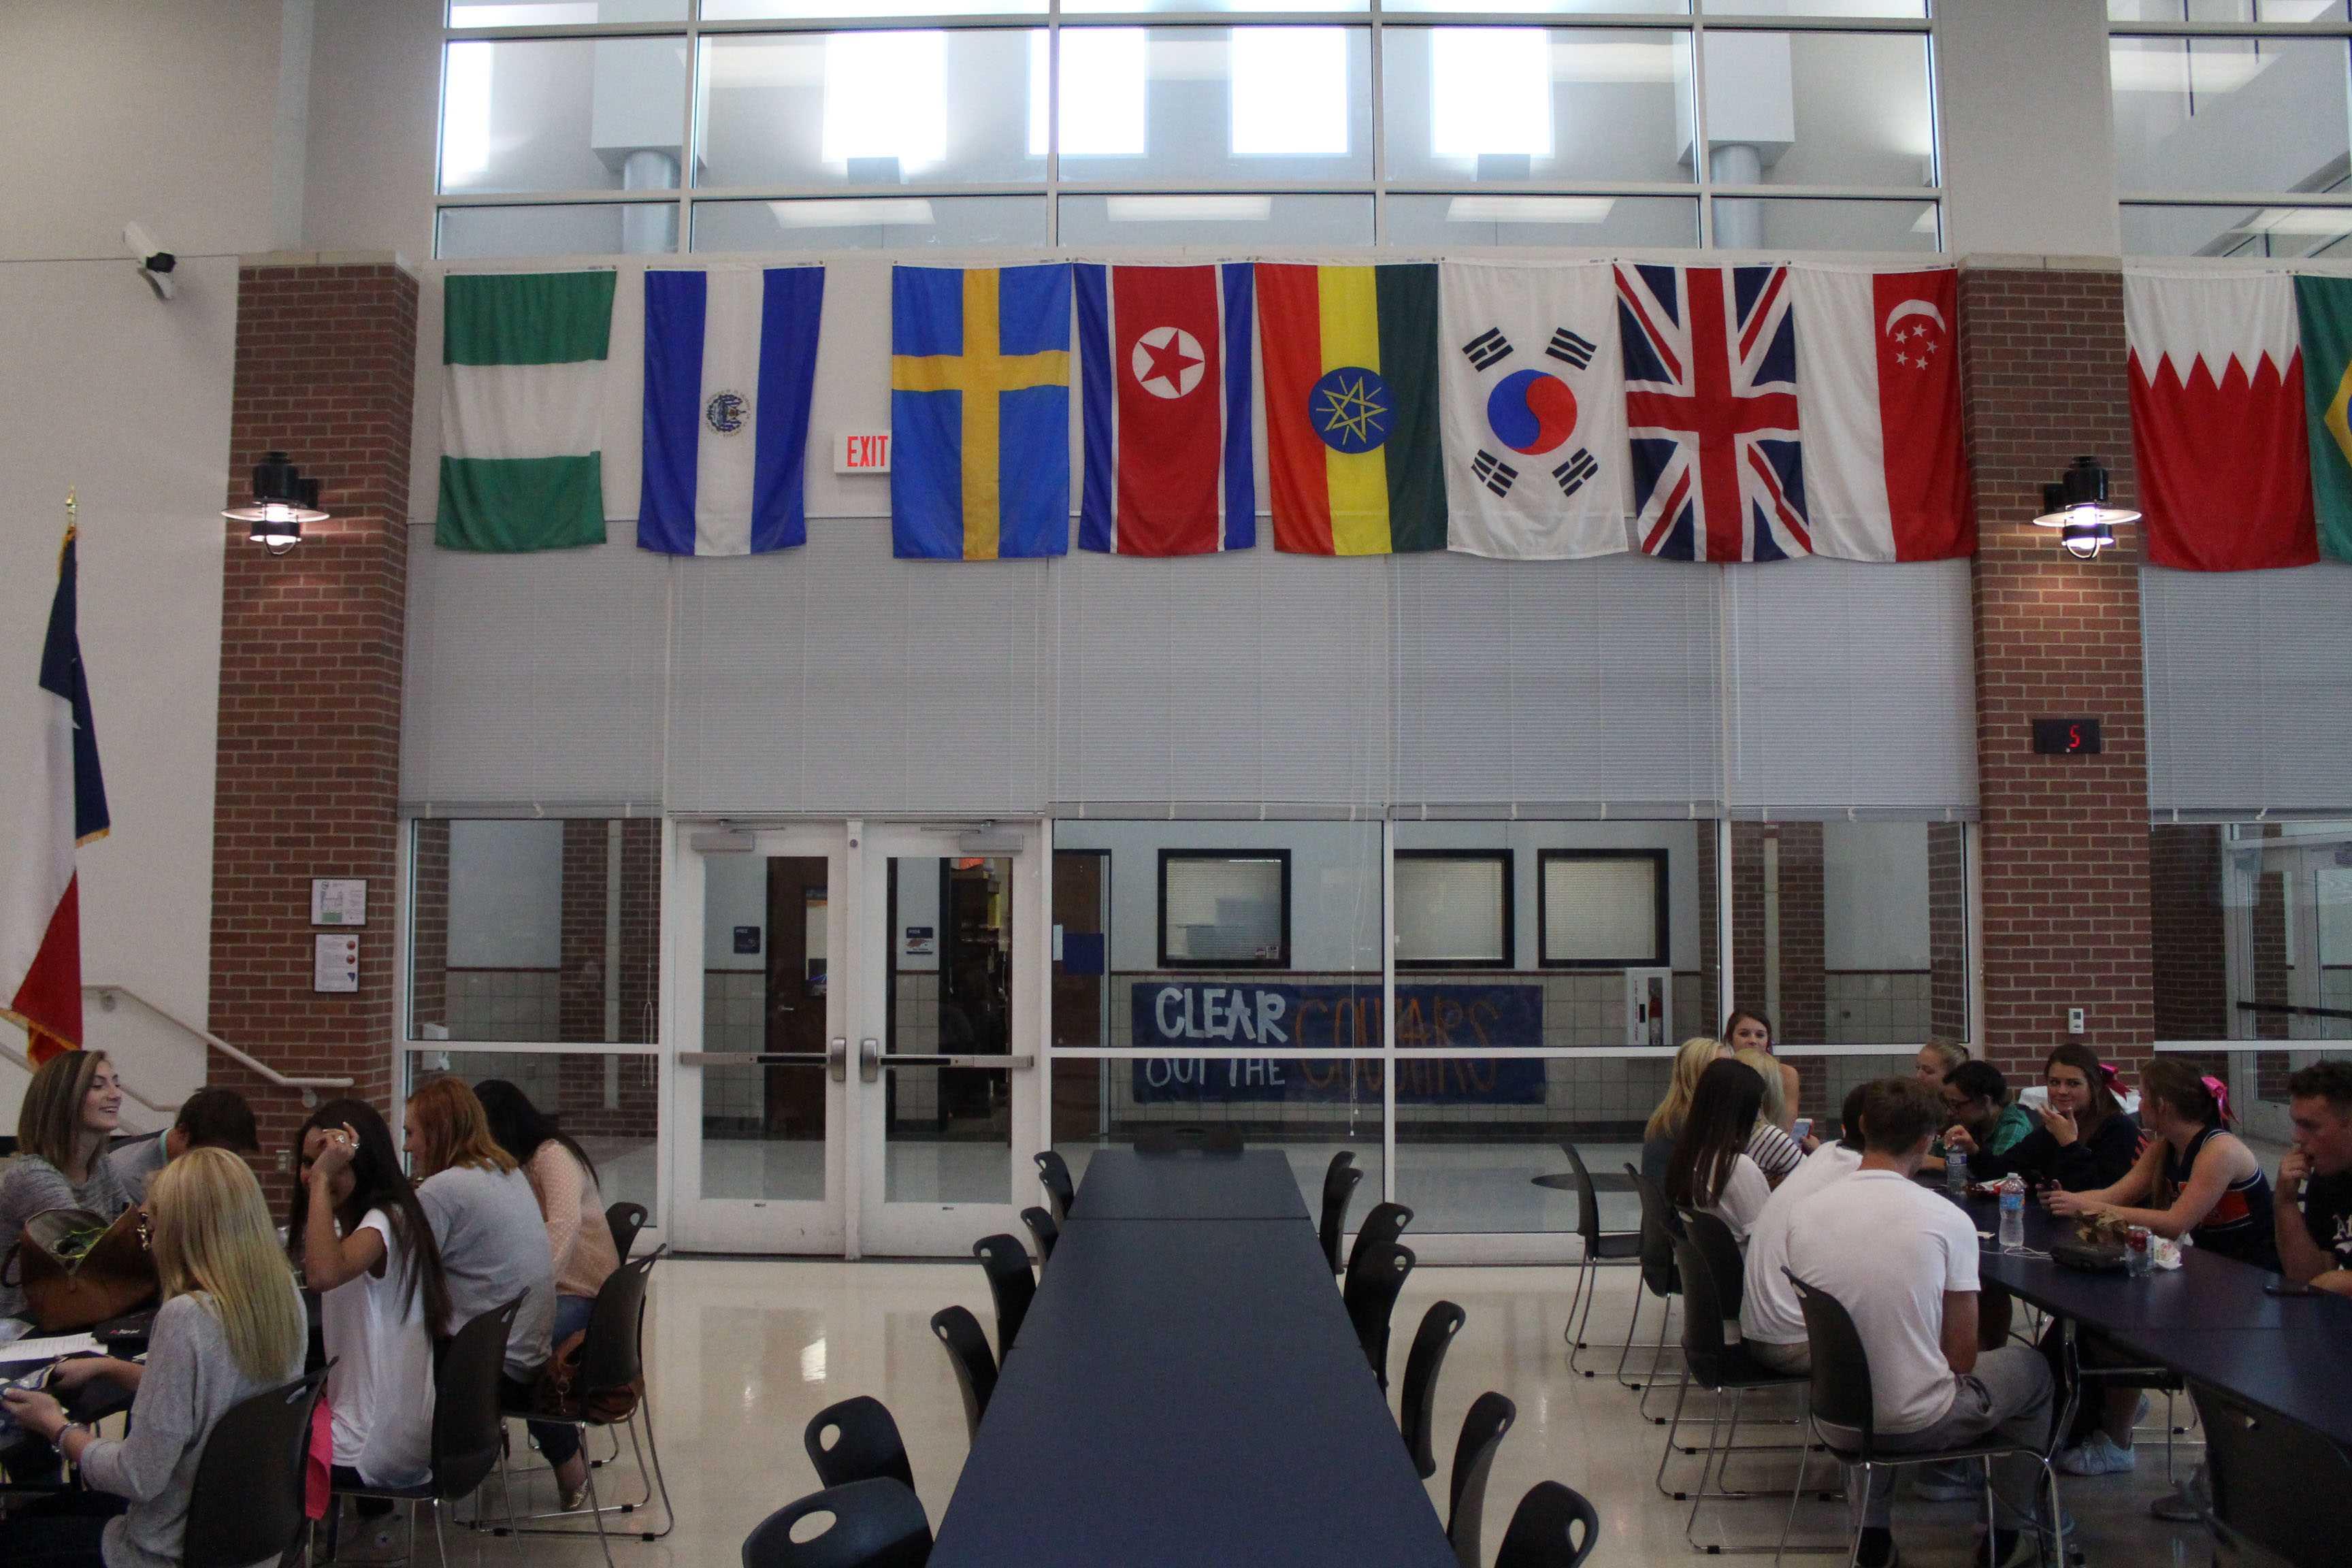 The lunch room's most notable feature is the flags that follow the edges of the room. Countries in the picture include South Korea, Singapore, Ecuador, Nigeria, Bahrain and Ghana